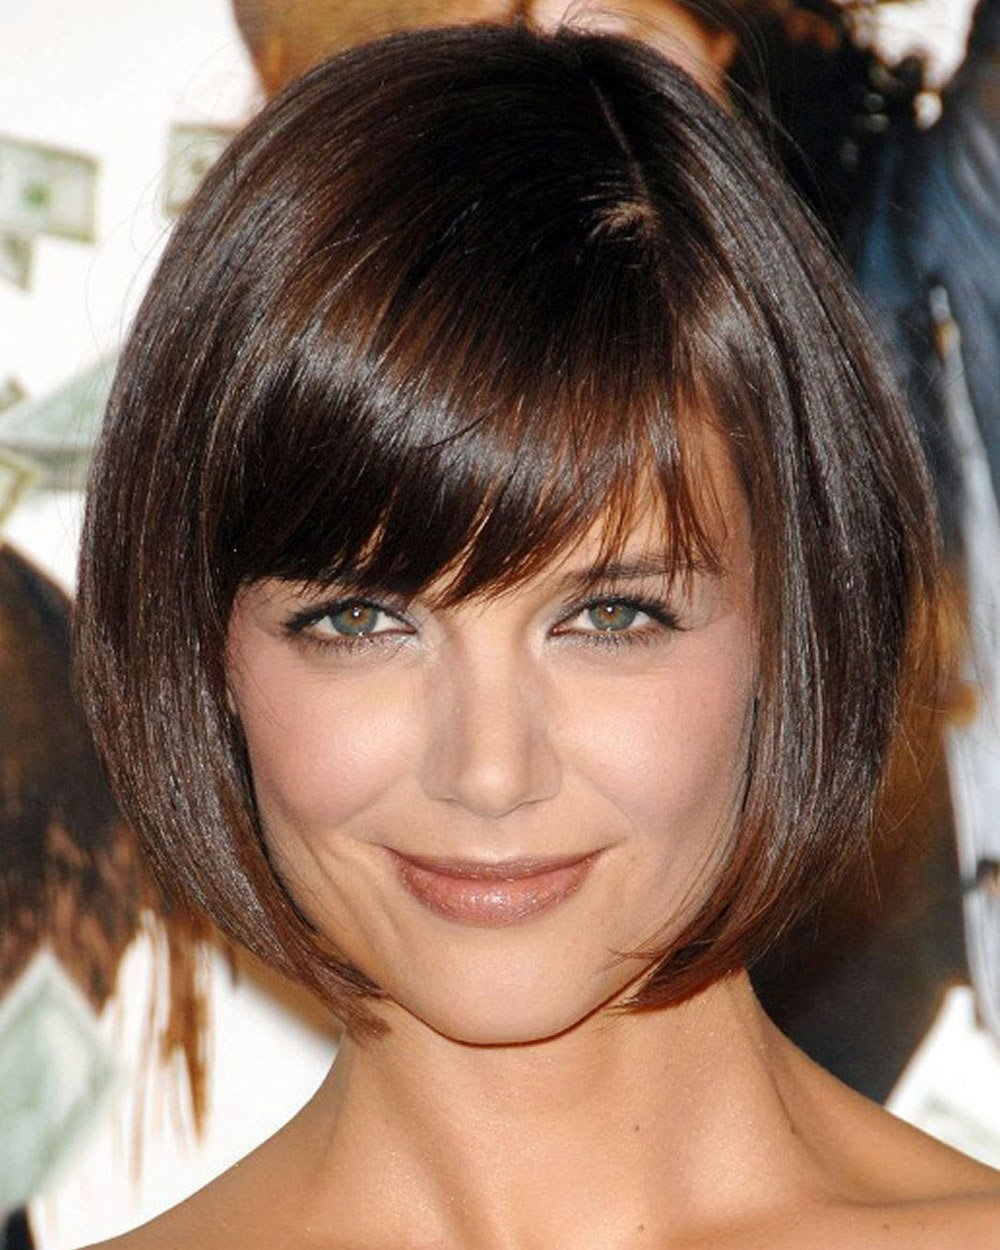 The Best 31 Chic Short Haircut Ideas 2018 Pixie Bob Hair Pictures